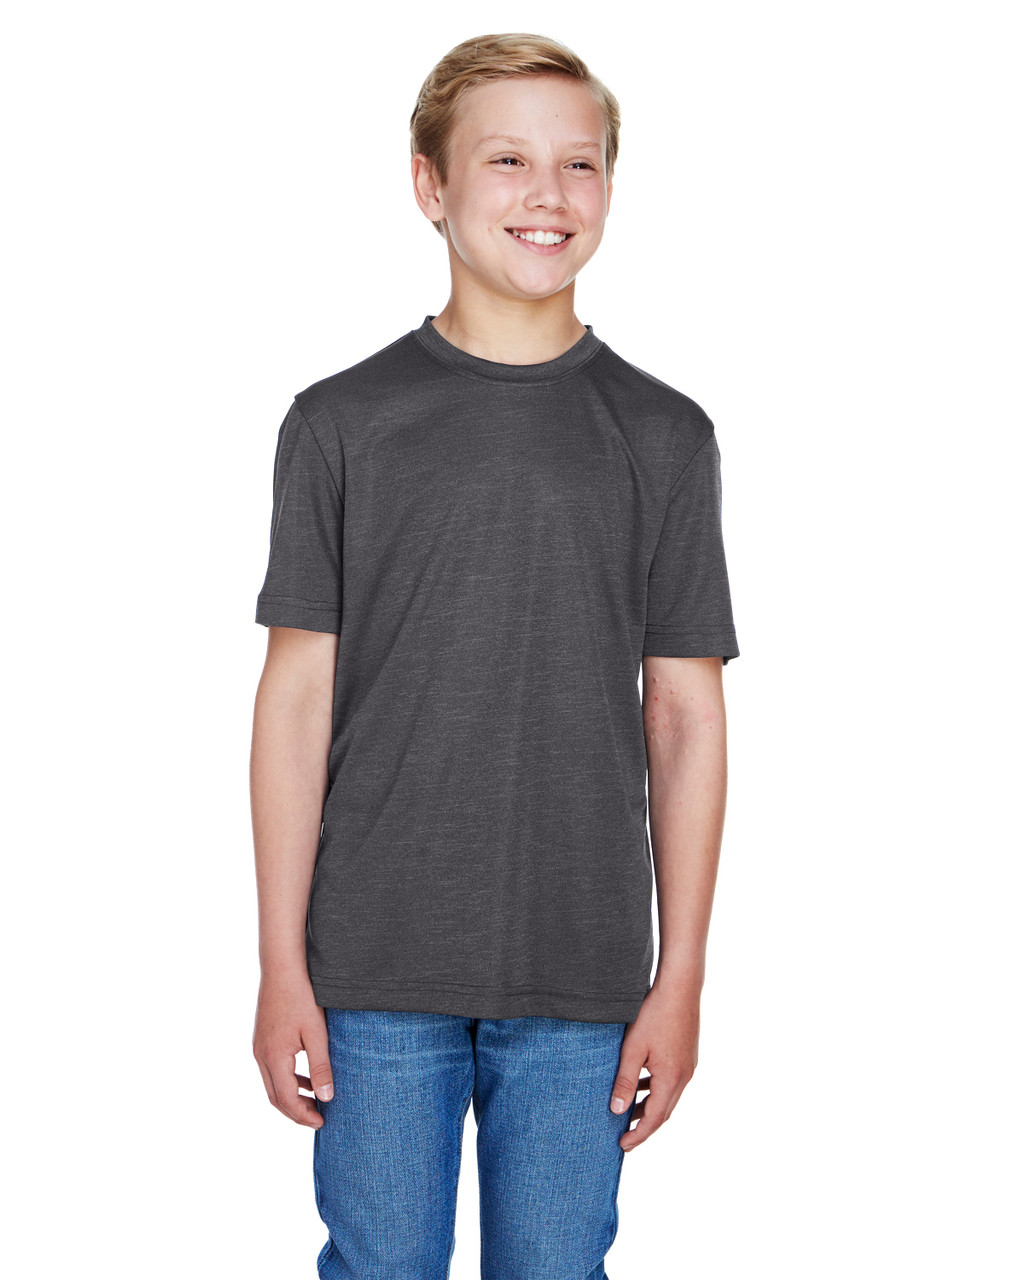 Dark Grey Heather - TT11HY Team 365 Youth Sonic Heather Performance T-Shirt | BlankClothing.ca